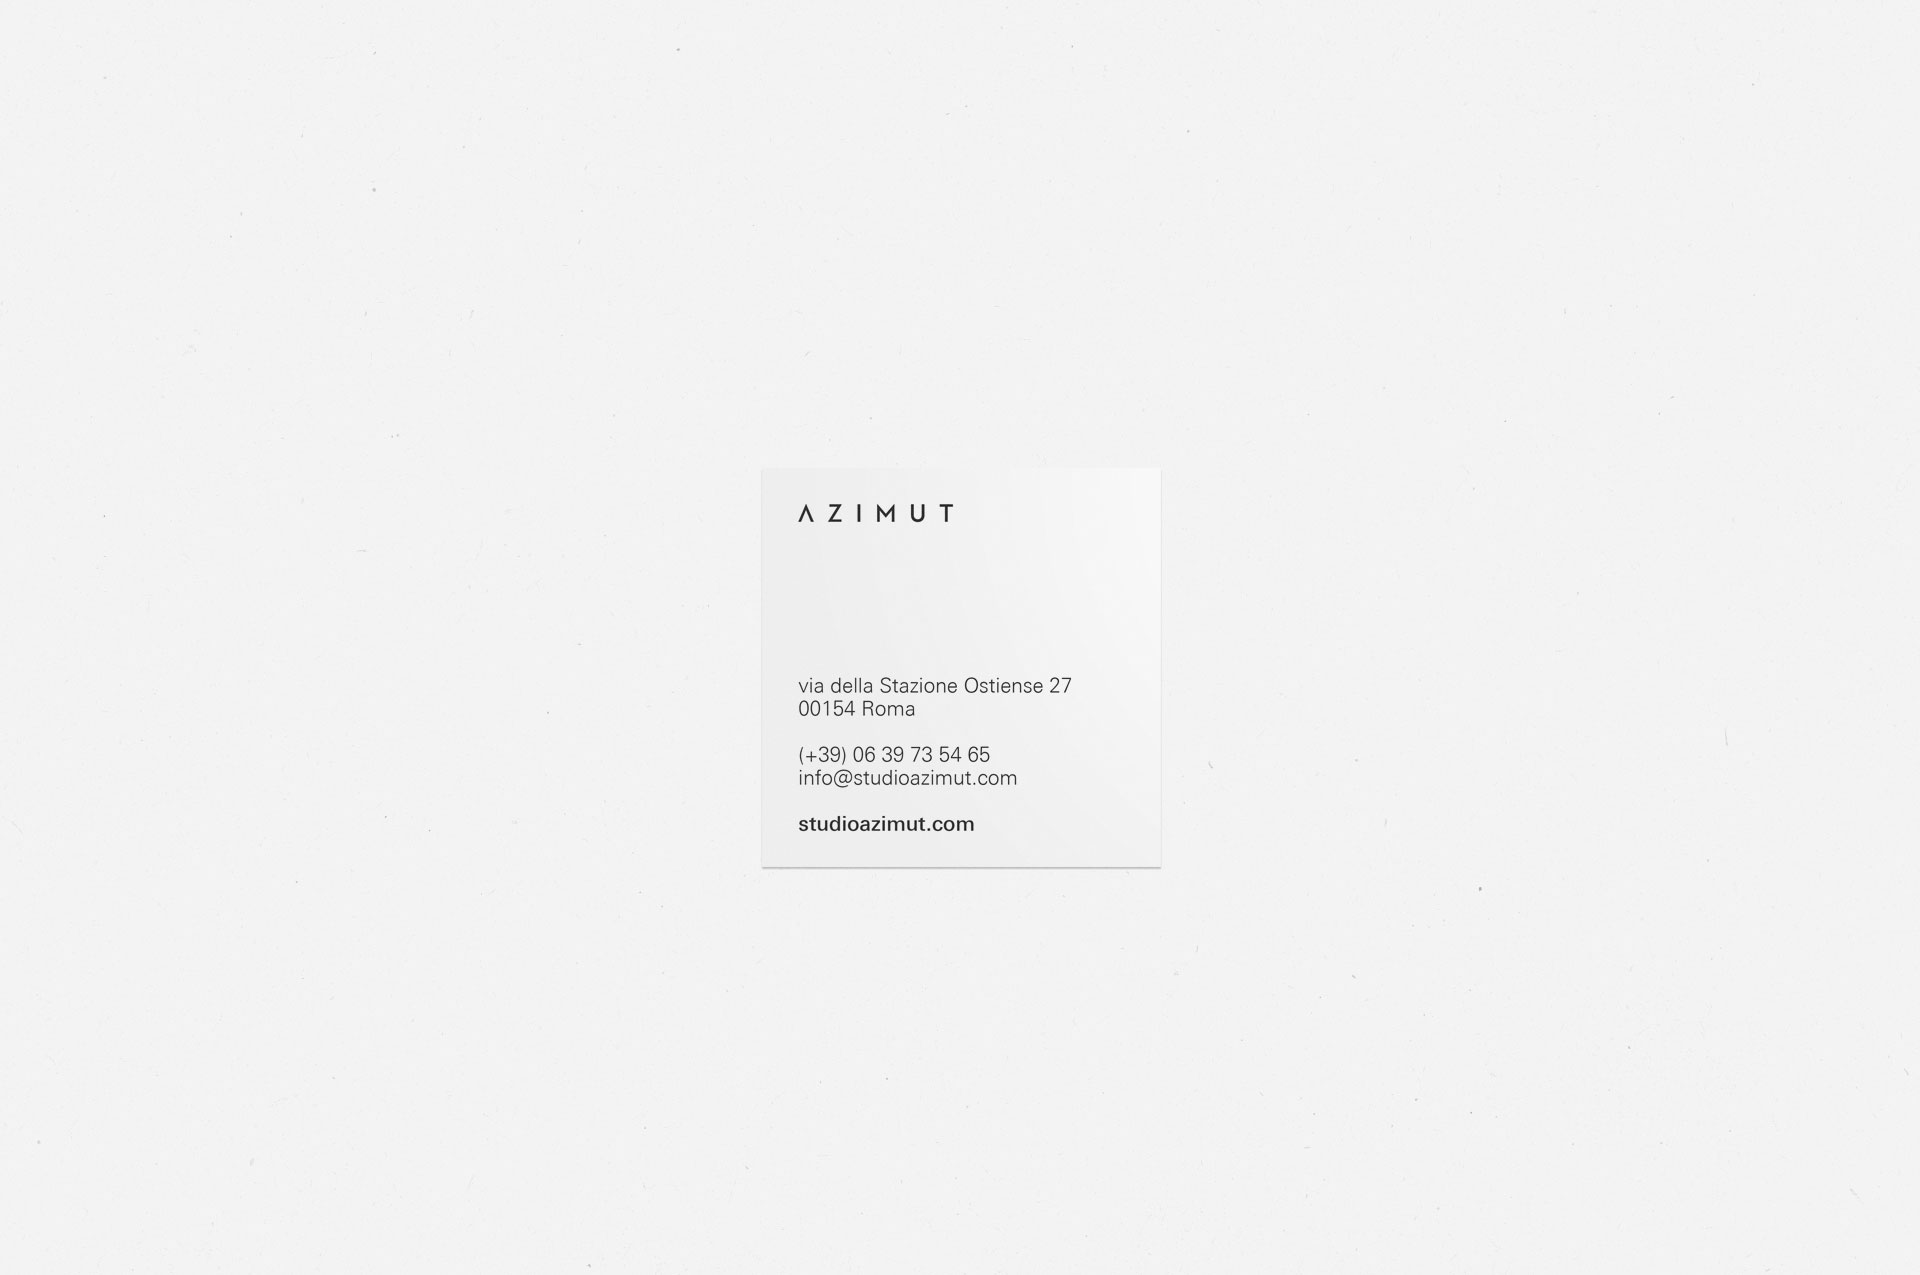 Studio Azimut Business Cards